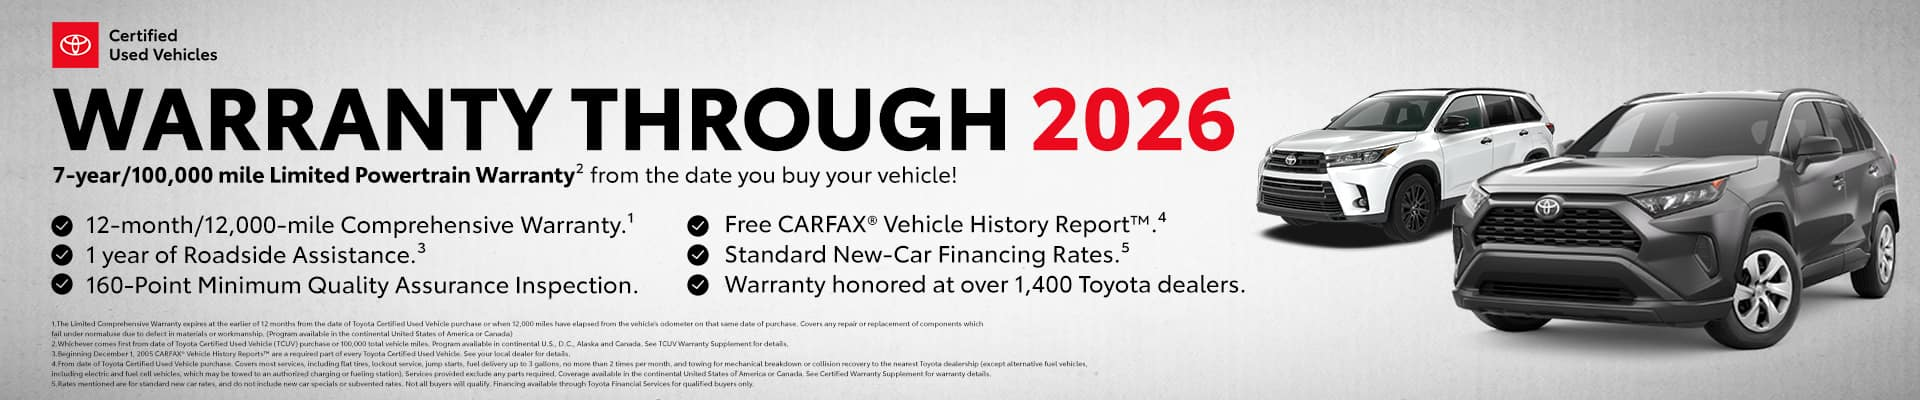 Certified pre-owned warranty through 2026 - 7 year 100,000 mile limited powertrain warranty from the date you buy your vehicle - View our certified used inventory